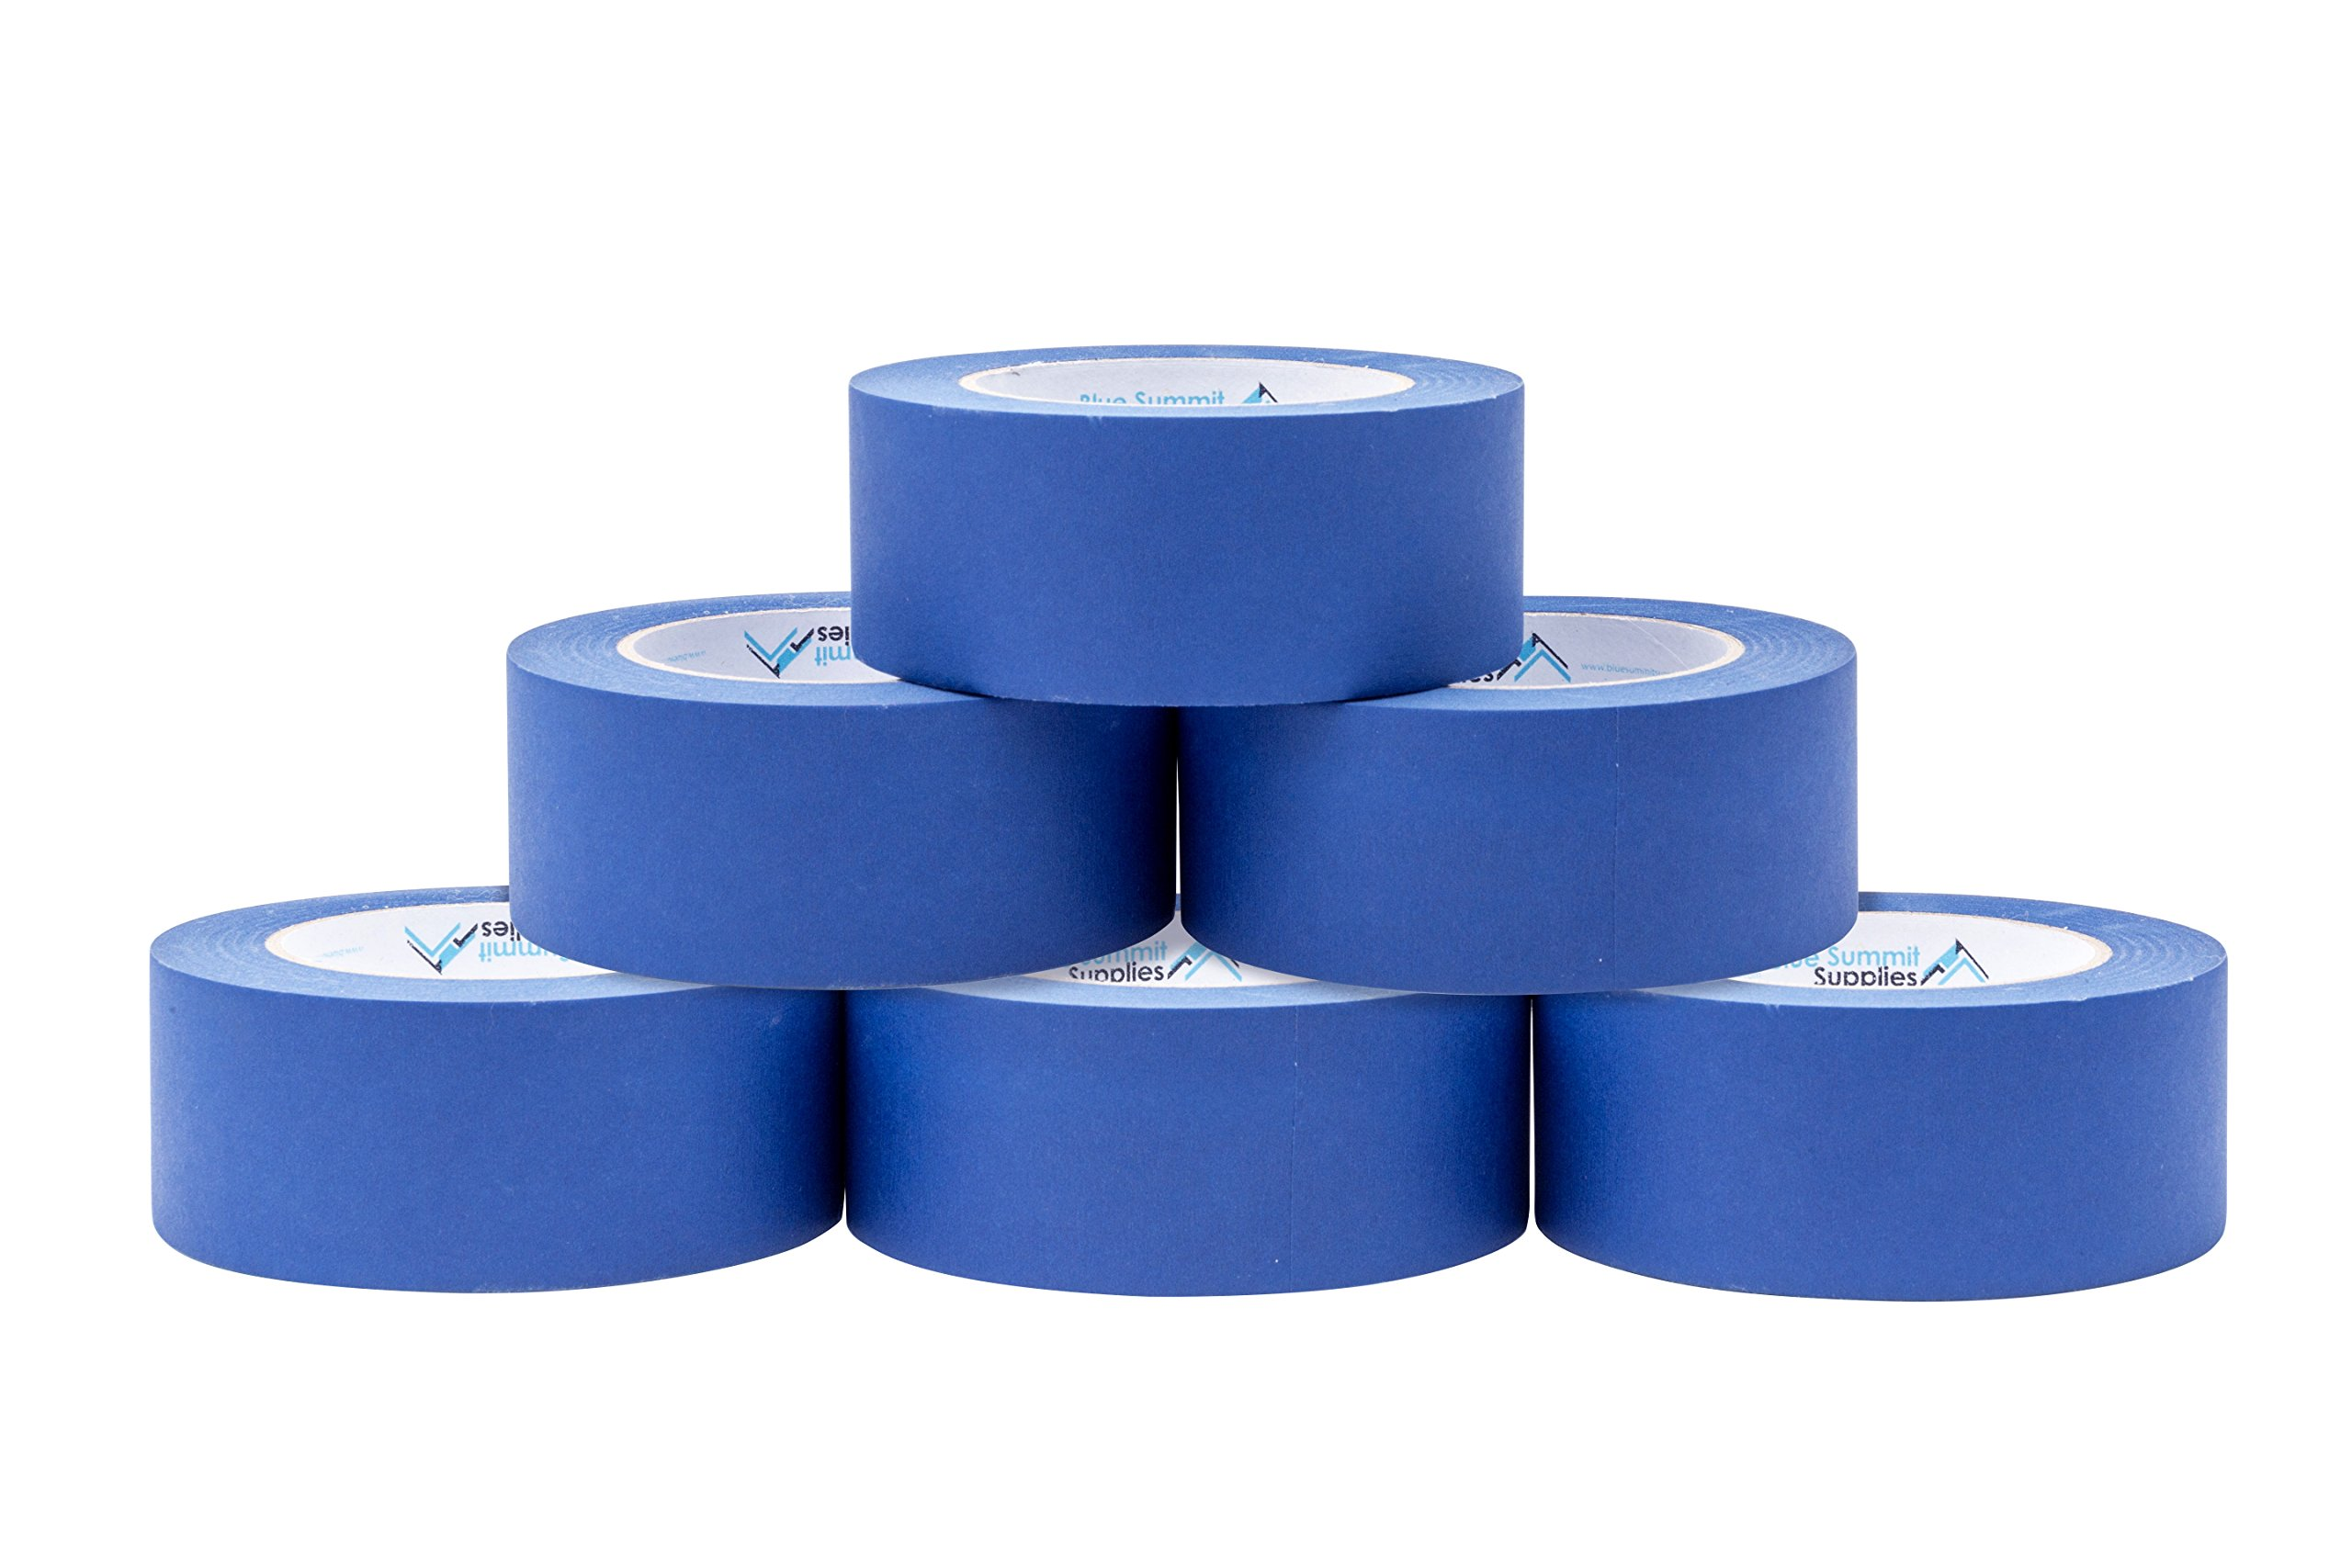 6 Pack 1.88 Inch Blue Painters Tape, Medium Adhesive That Sticks Well but Leaves No Residue Behind, 60 Yards Length, 6 Rolls, 360 Total Yards by Blue Summit Supplies